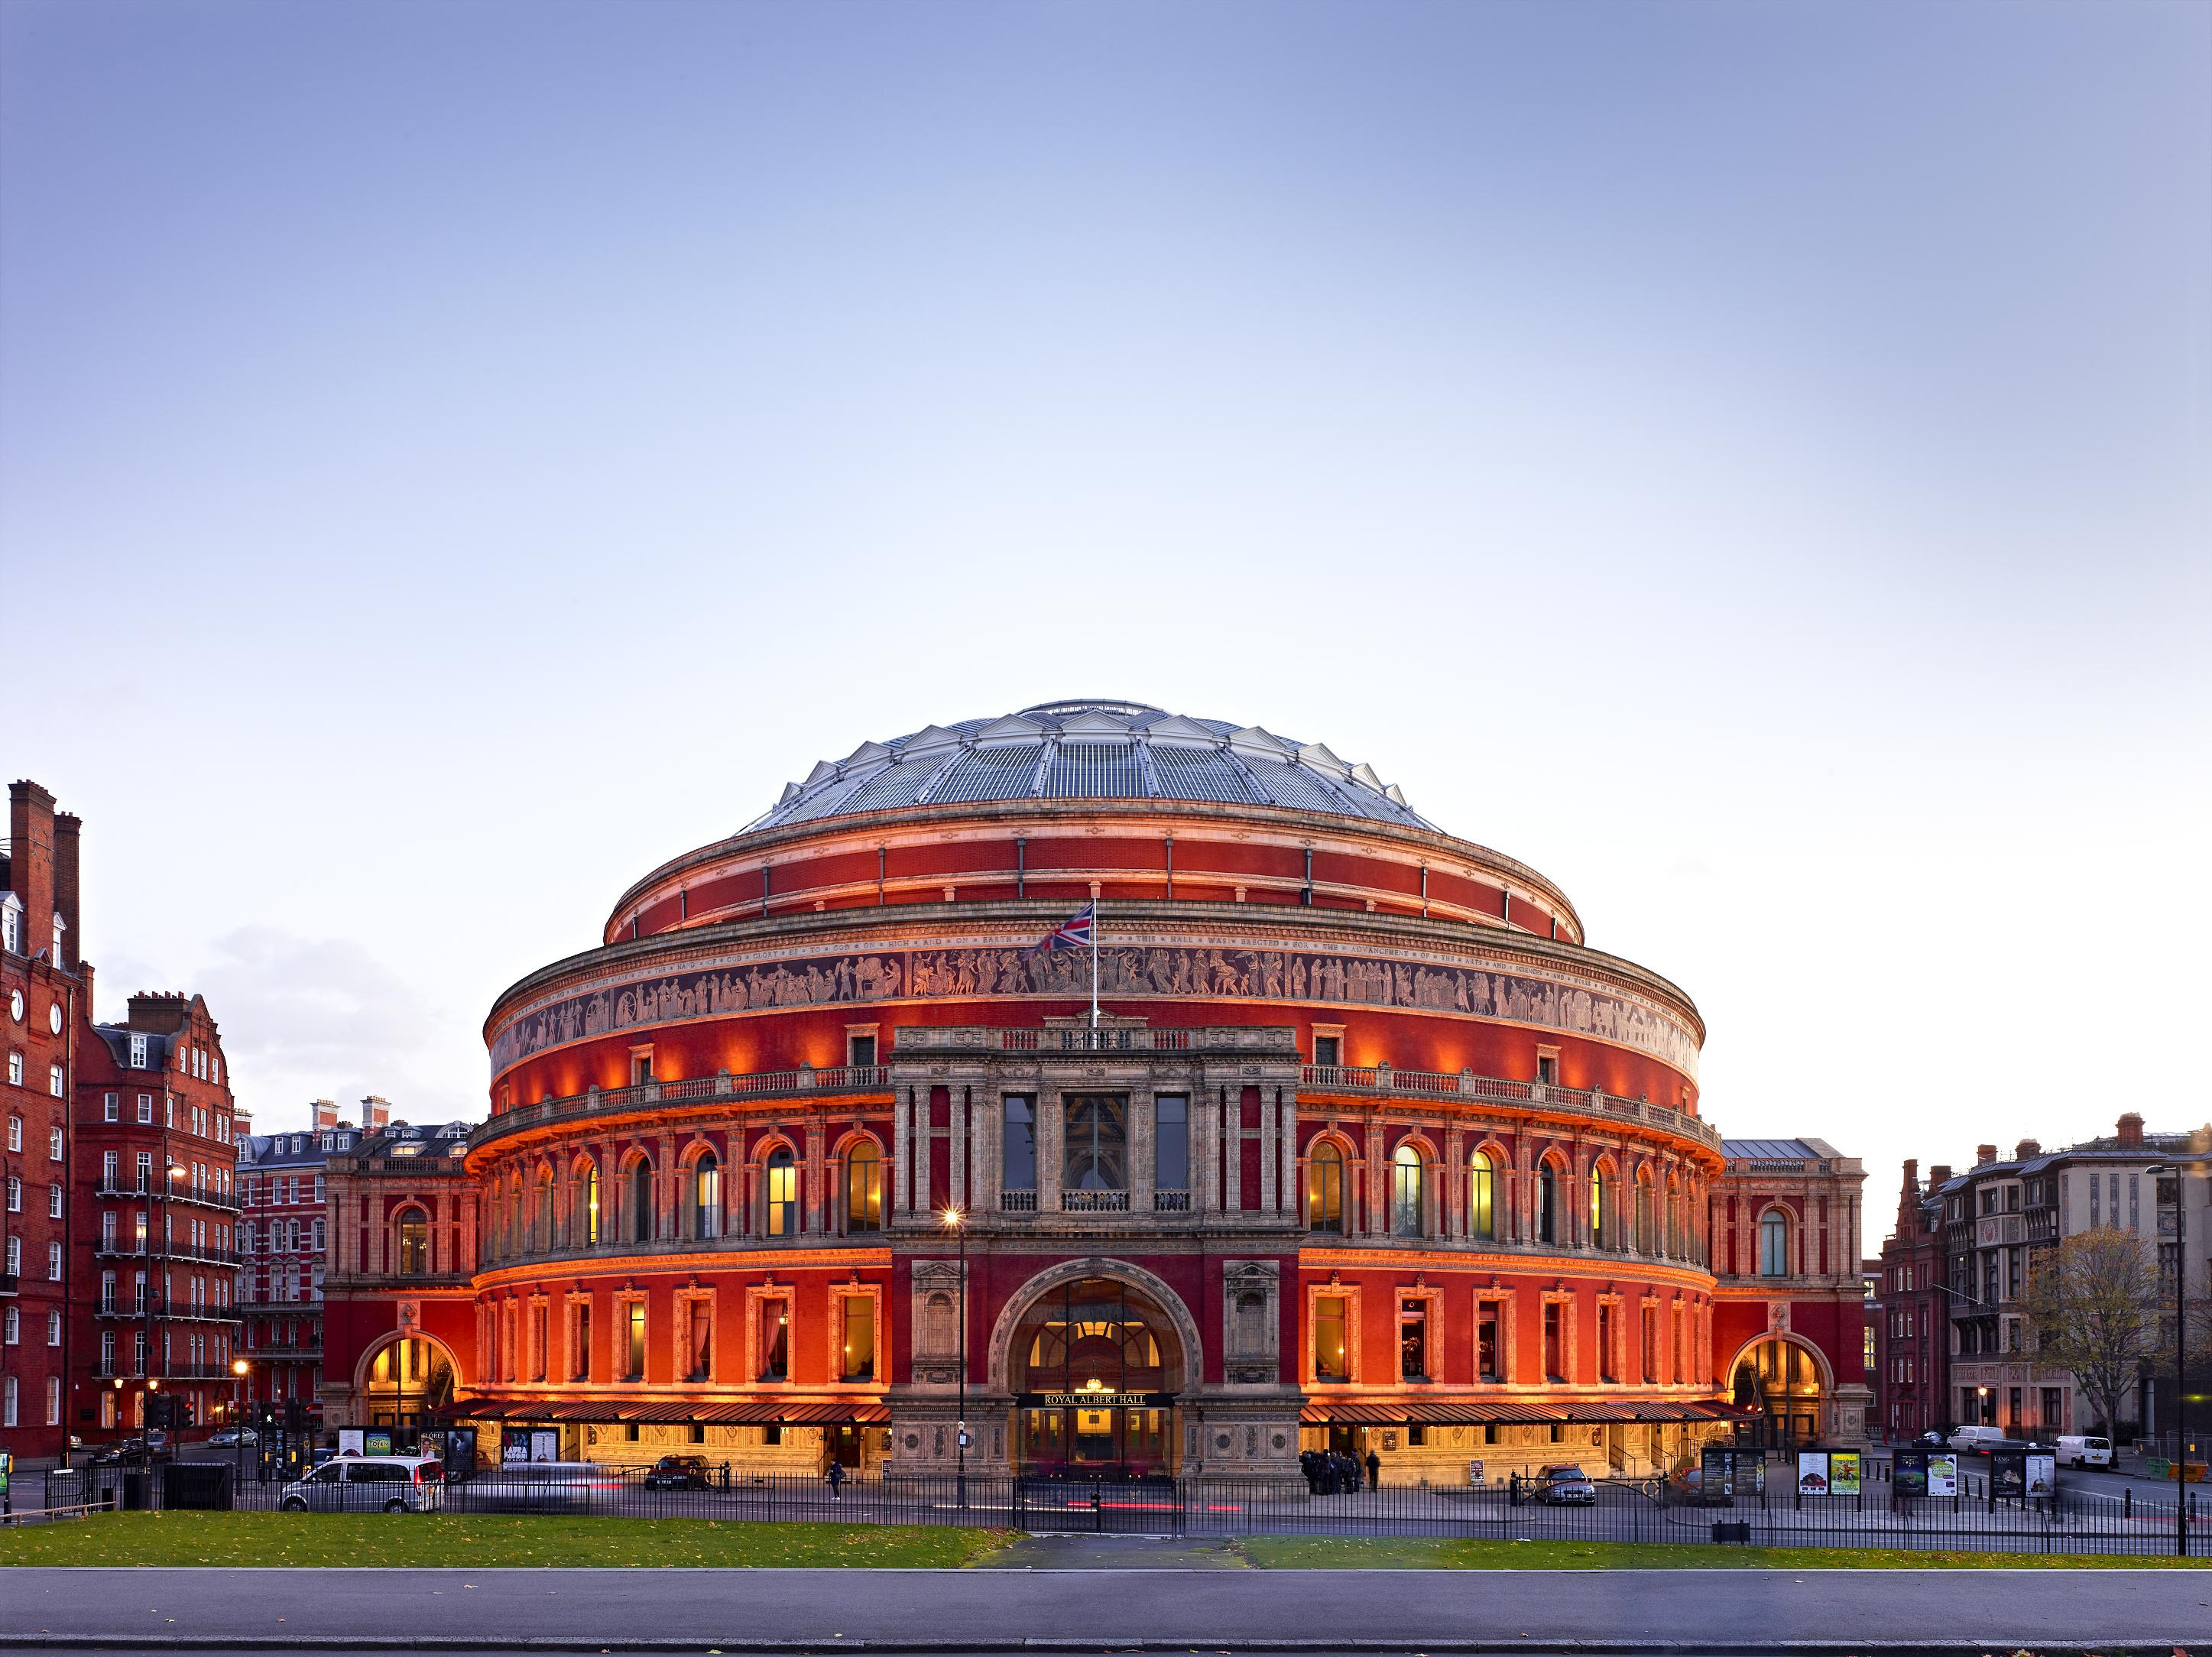 Verdi at Royal Albert Hall - London